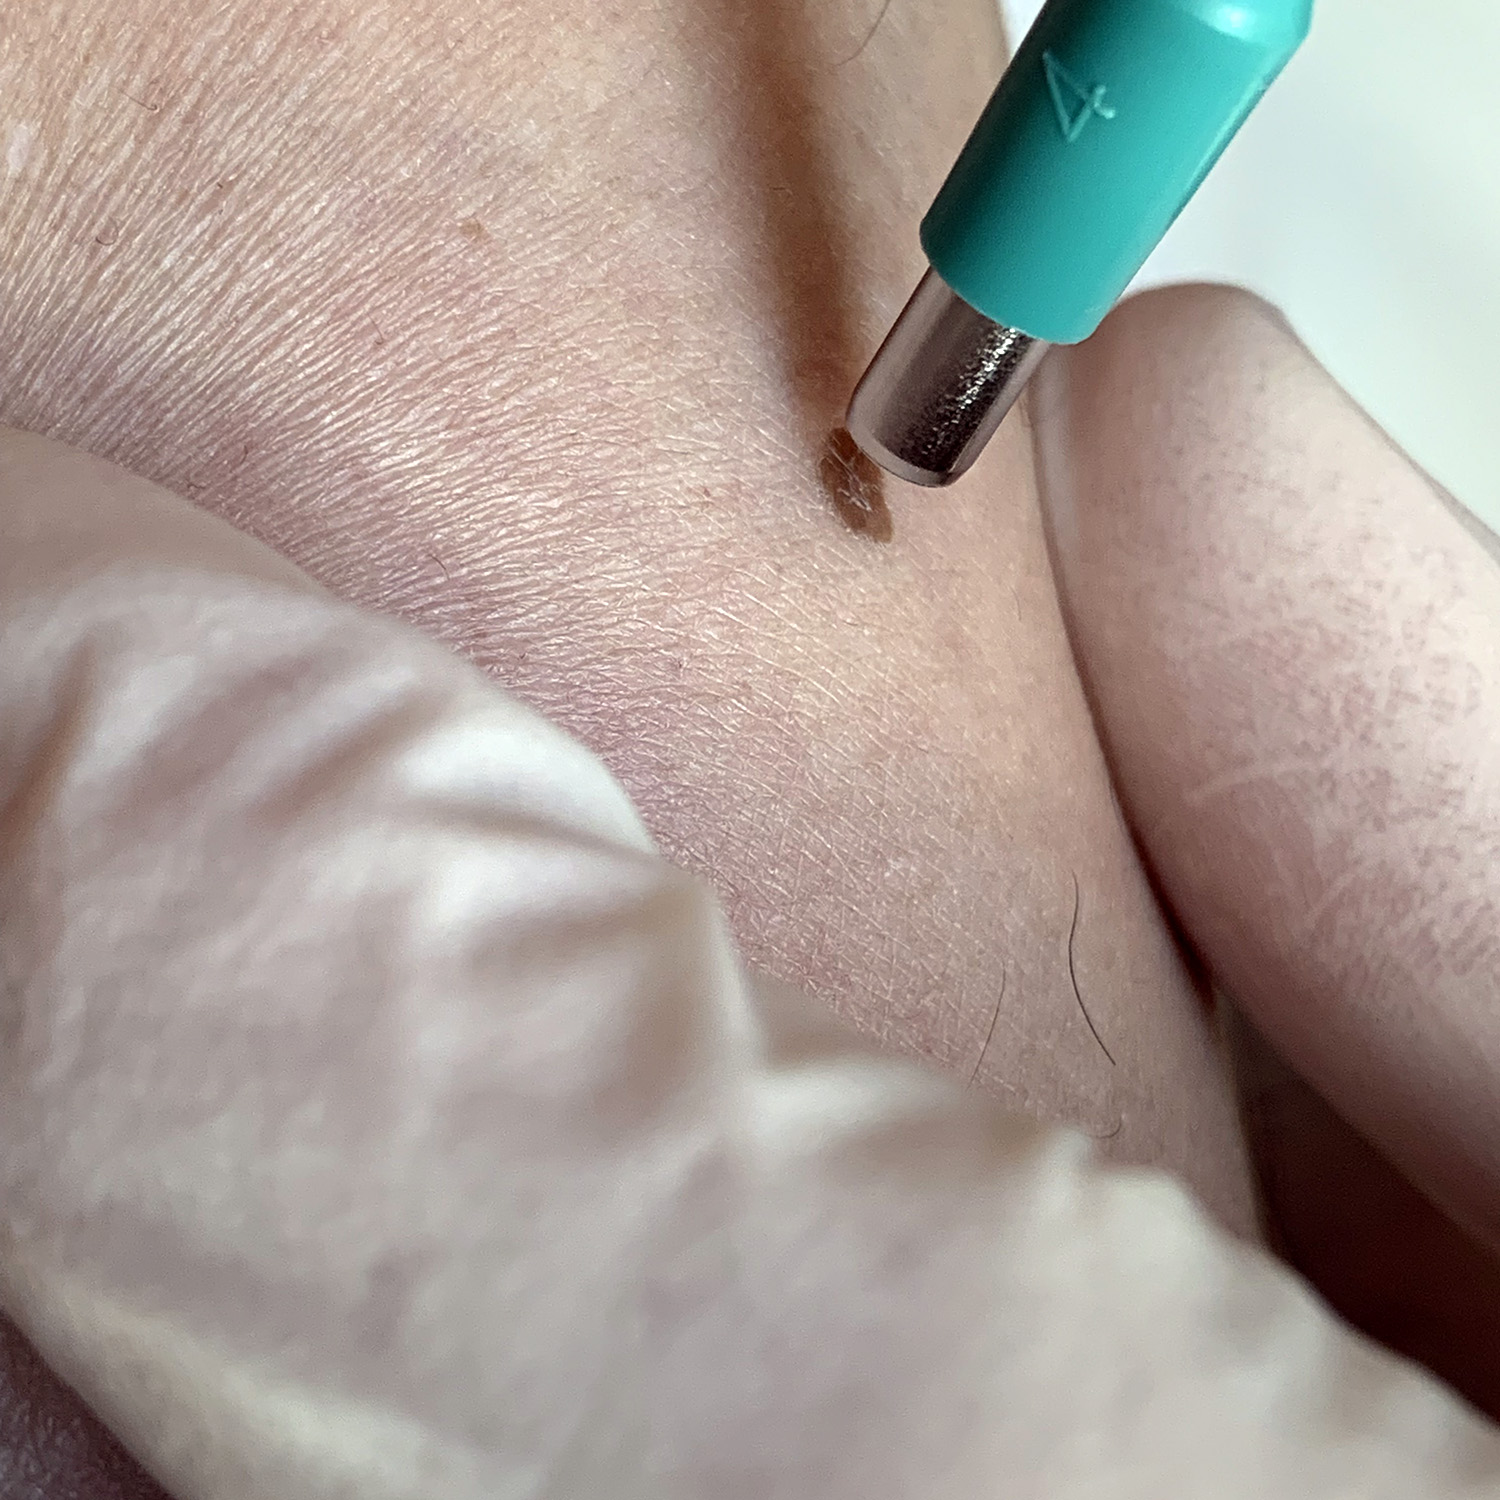 Punch biopsy aftercare